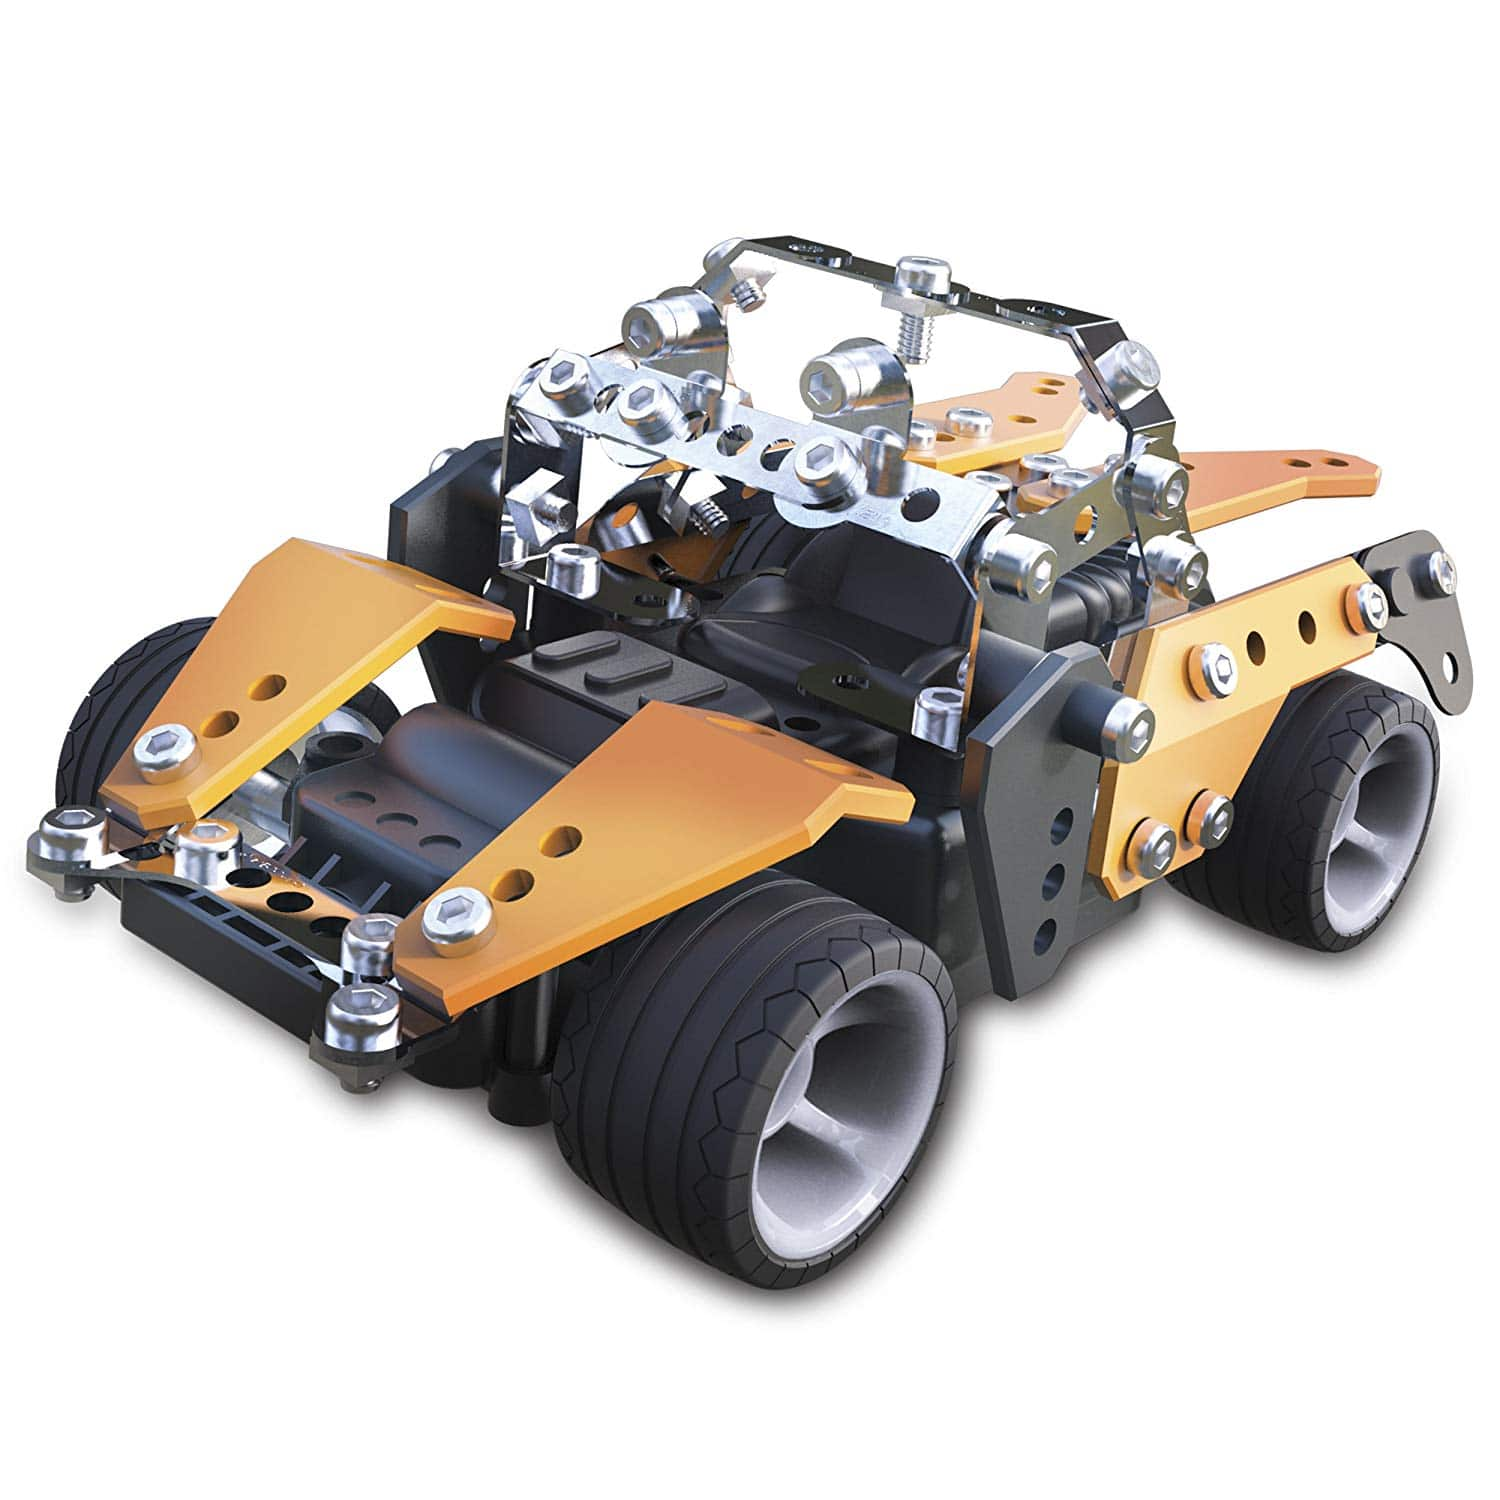 Meccano Roadster RC Remote Control Vehicle, 154 Pieces, For Ages 10 and up $16.48 @Walmart